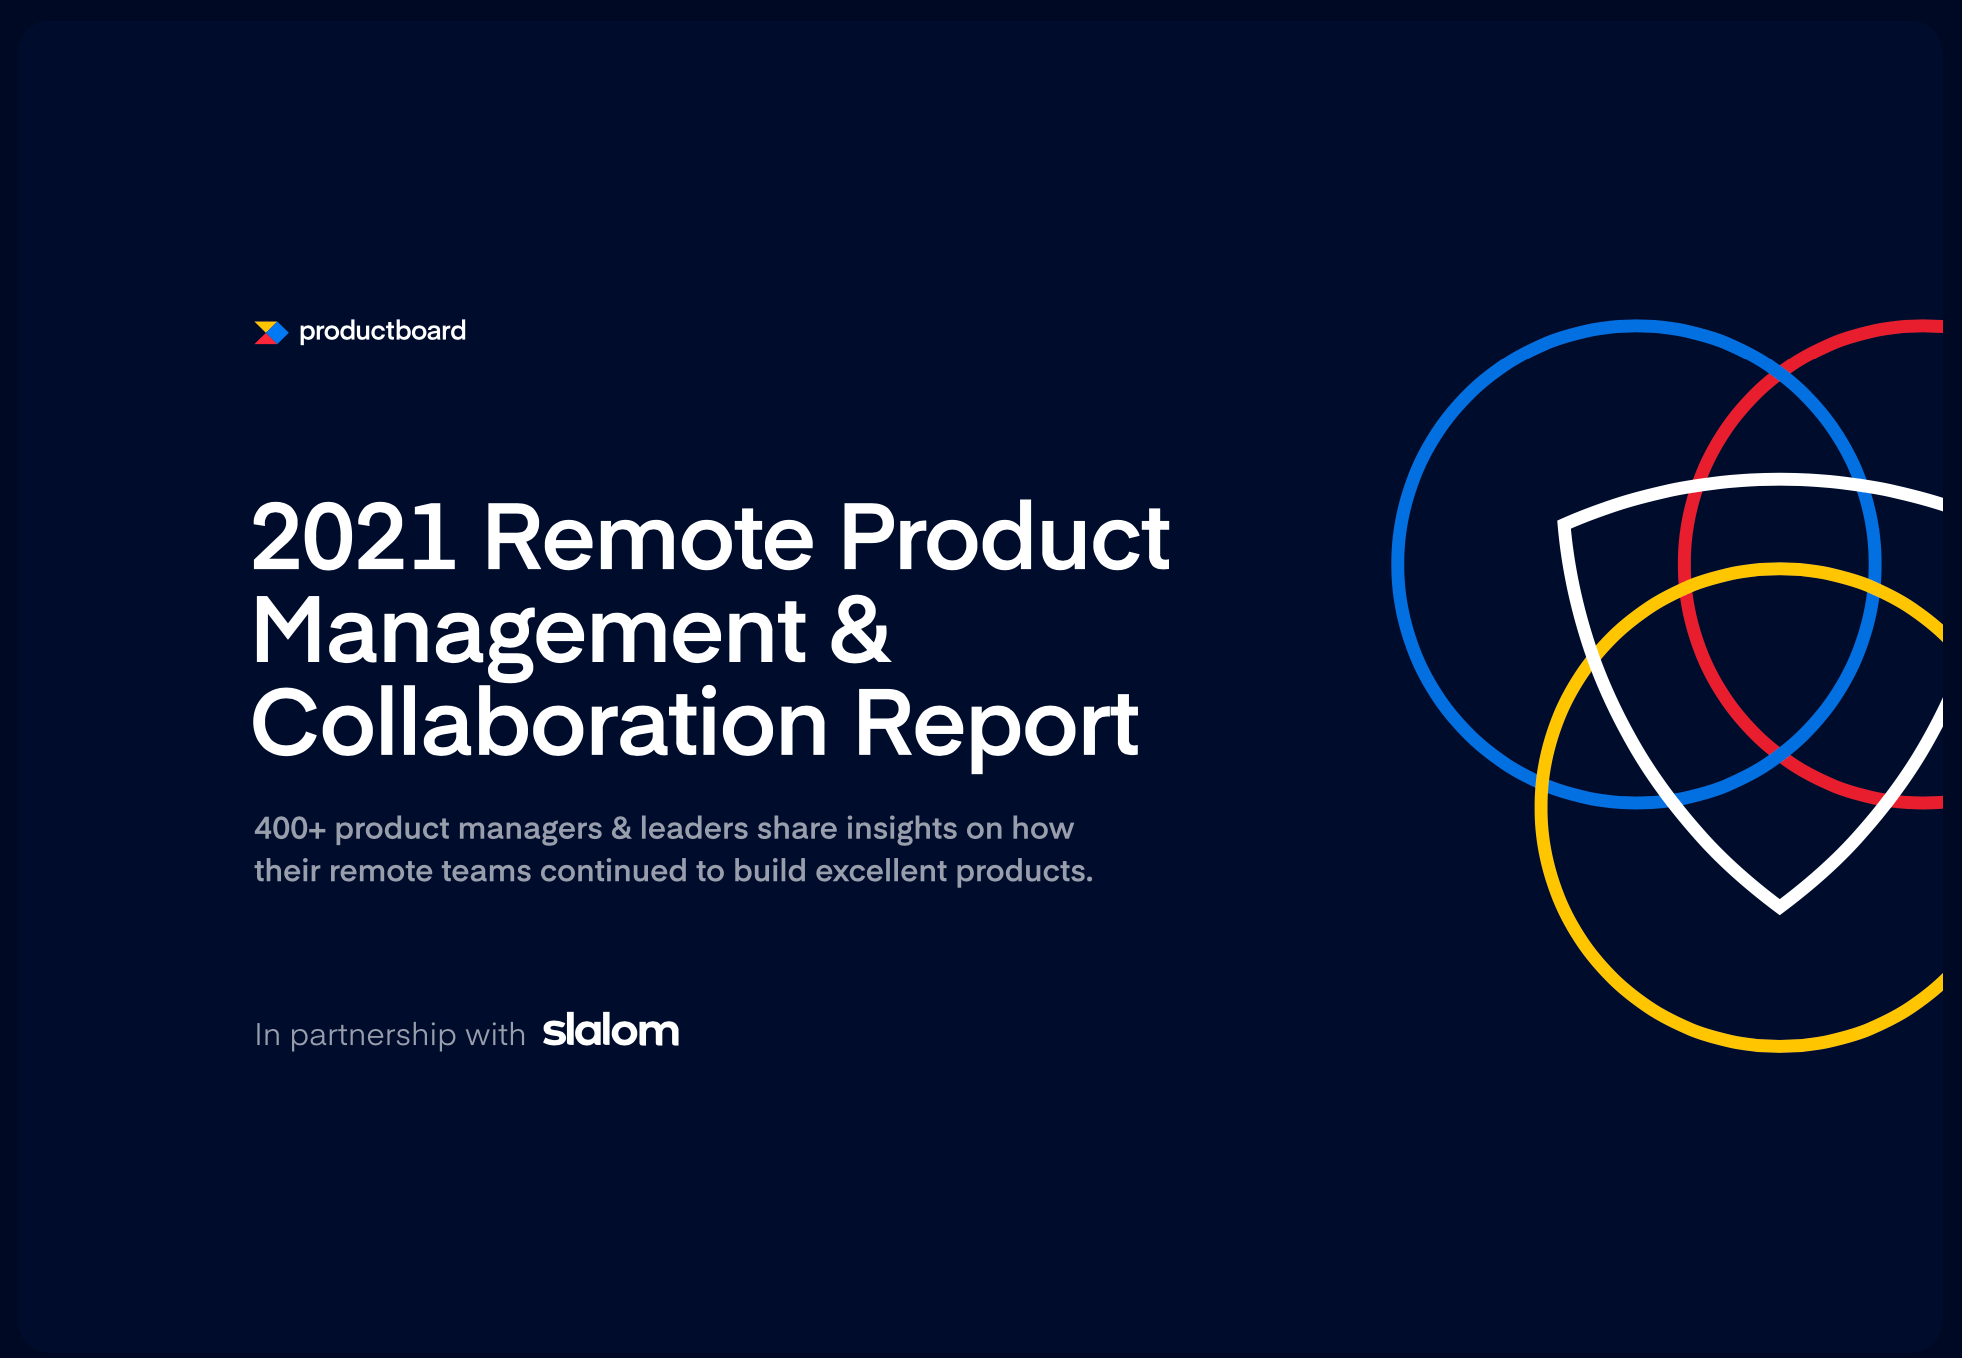 2021 remote product management & collaboration report